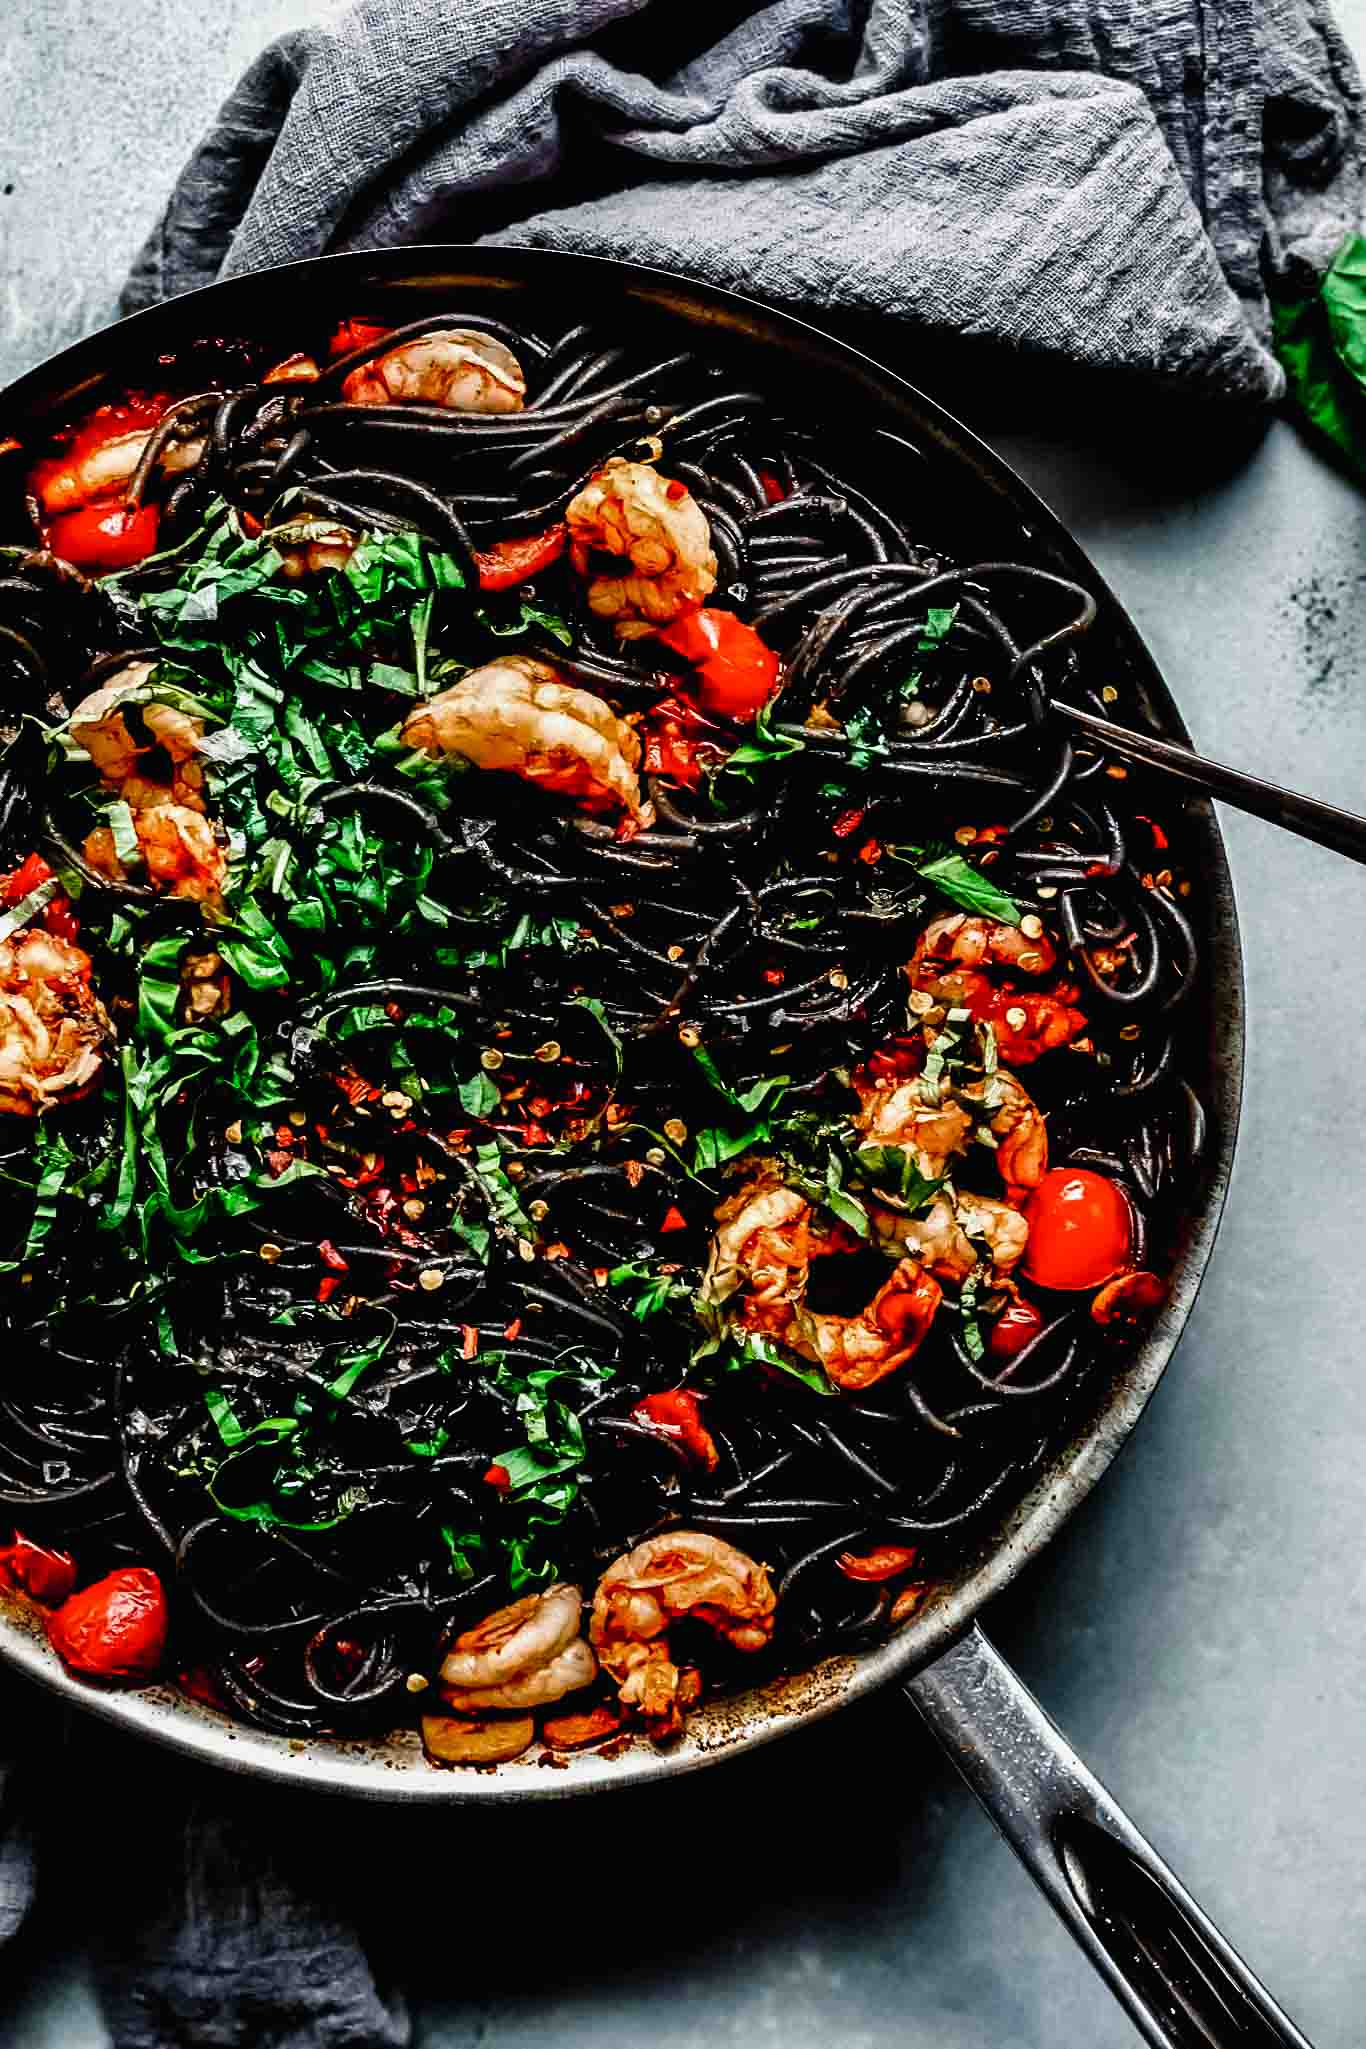 Squid ink pasta in skillet.